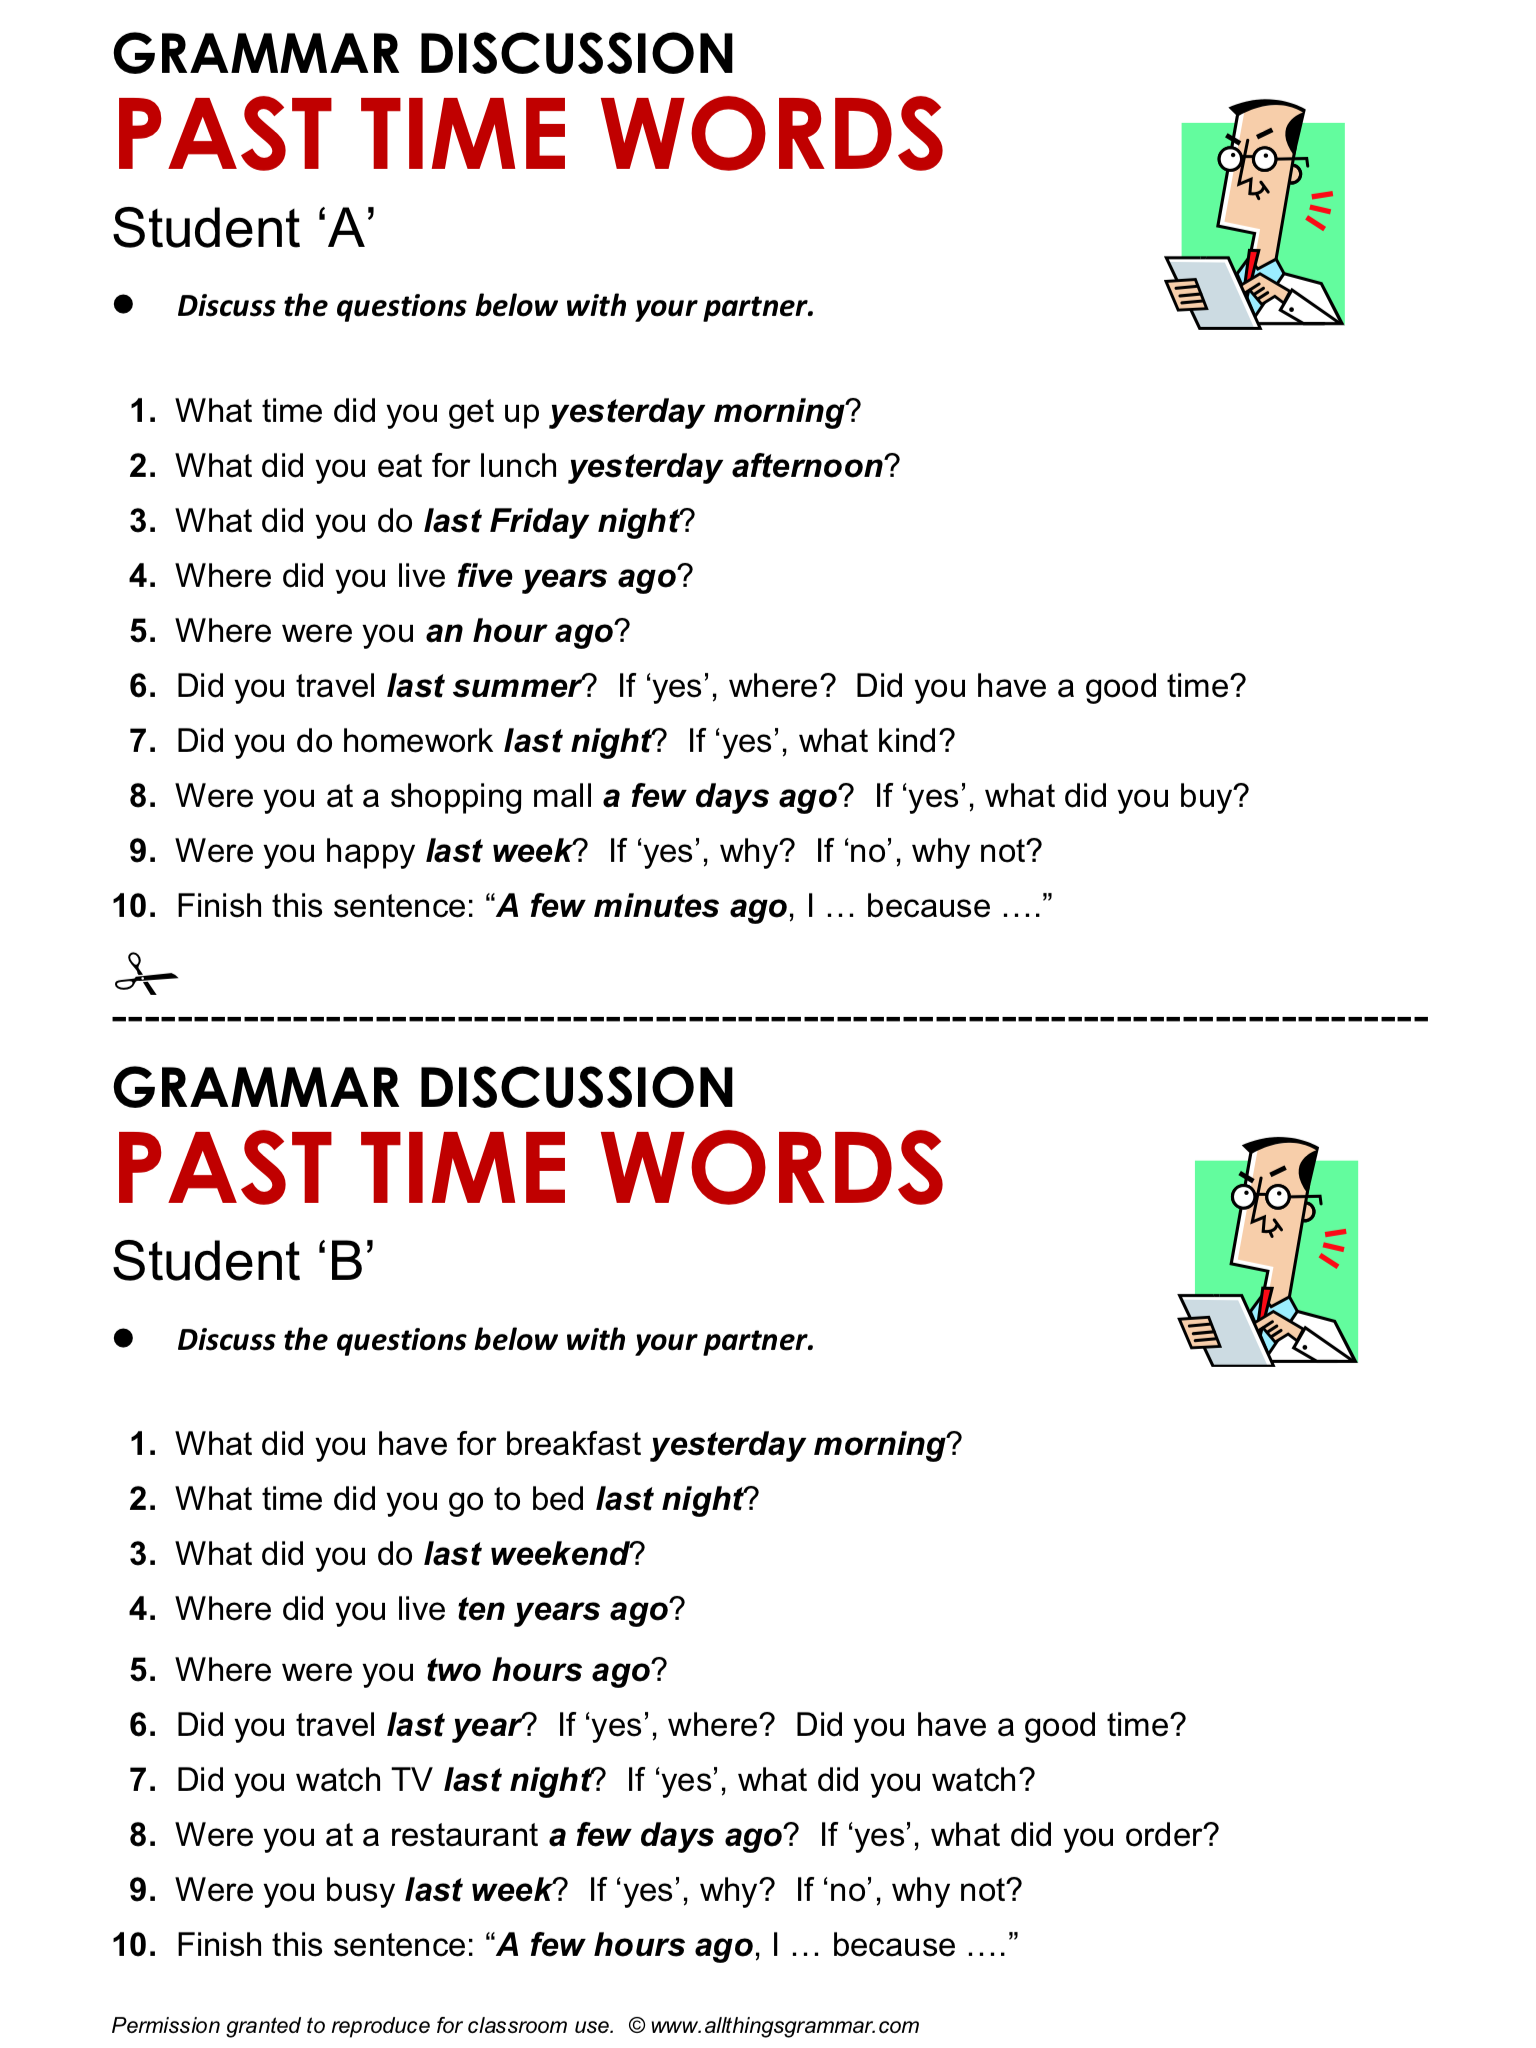 Grammar Discussion Past Time Words S